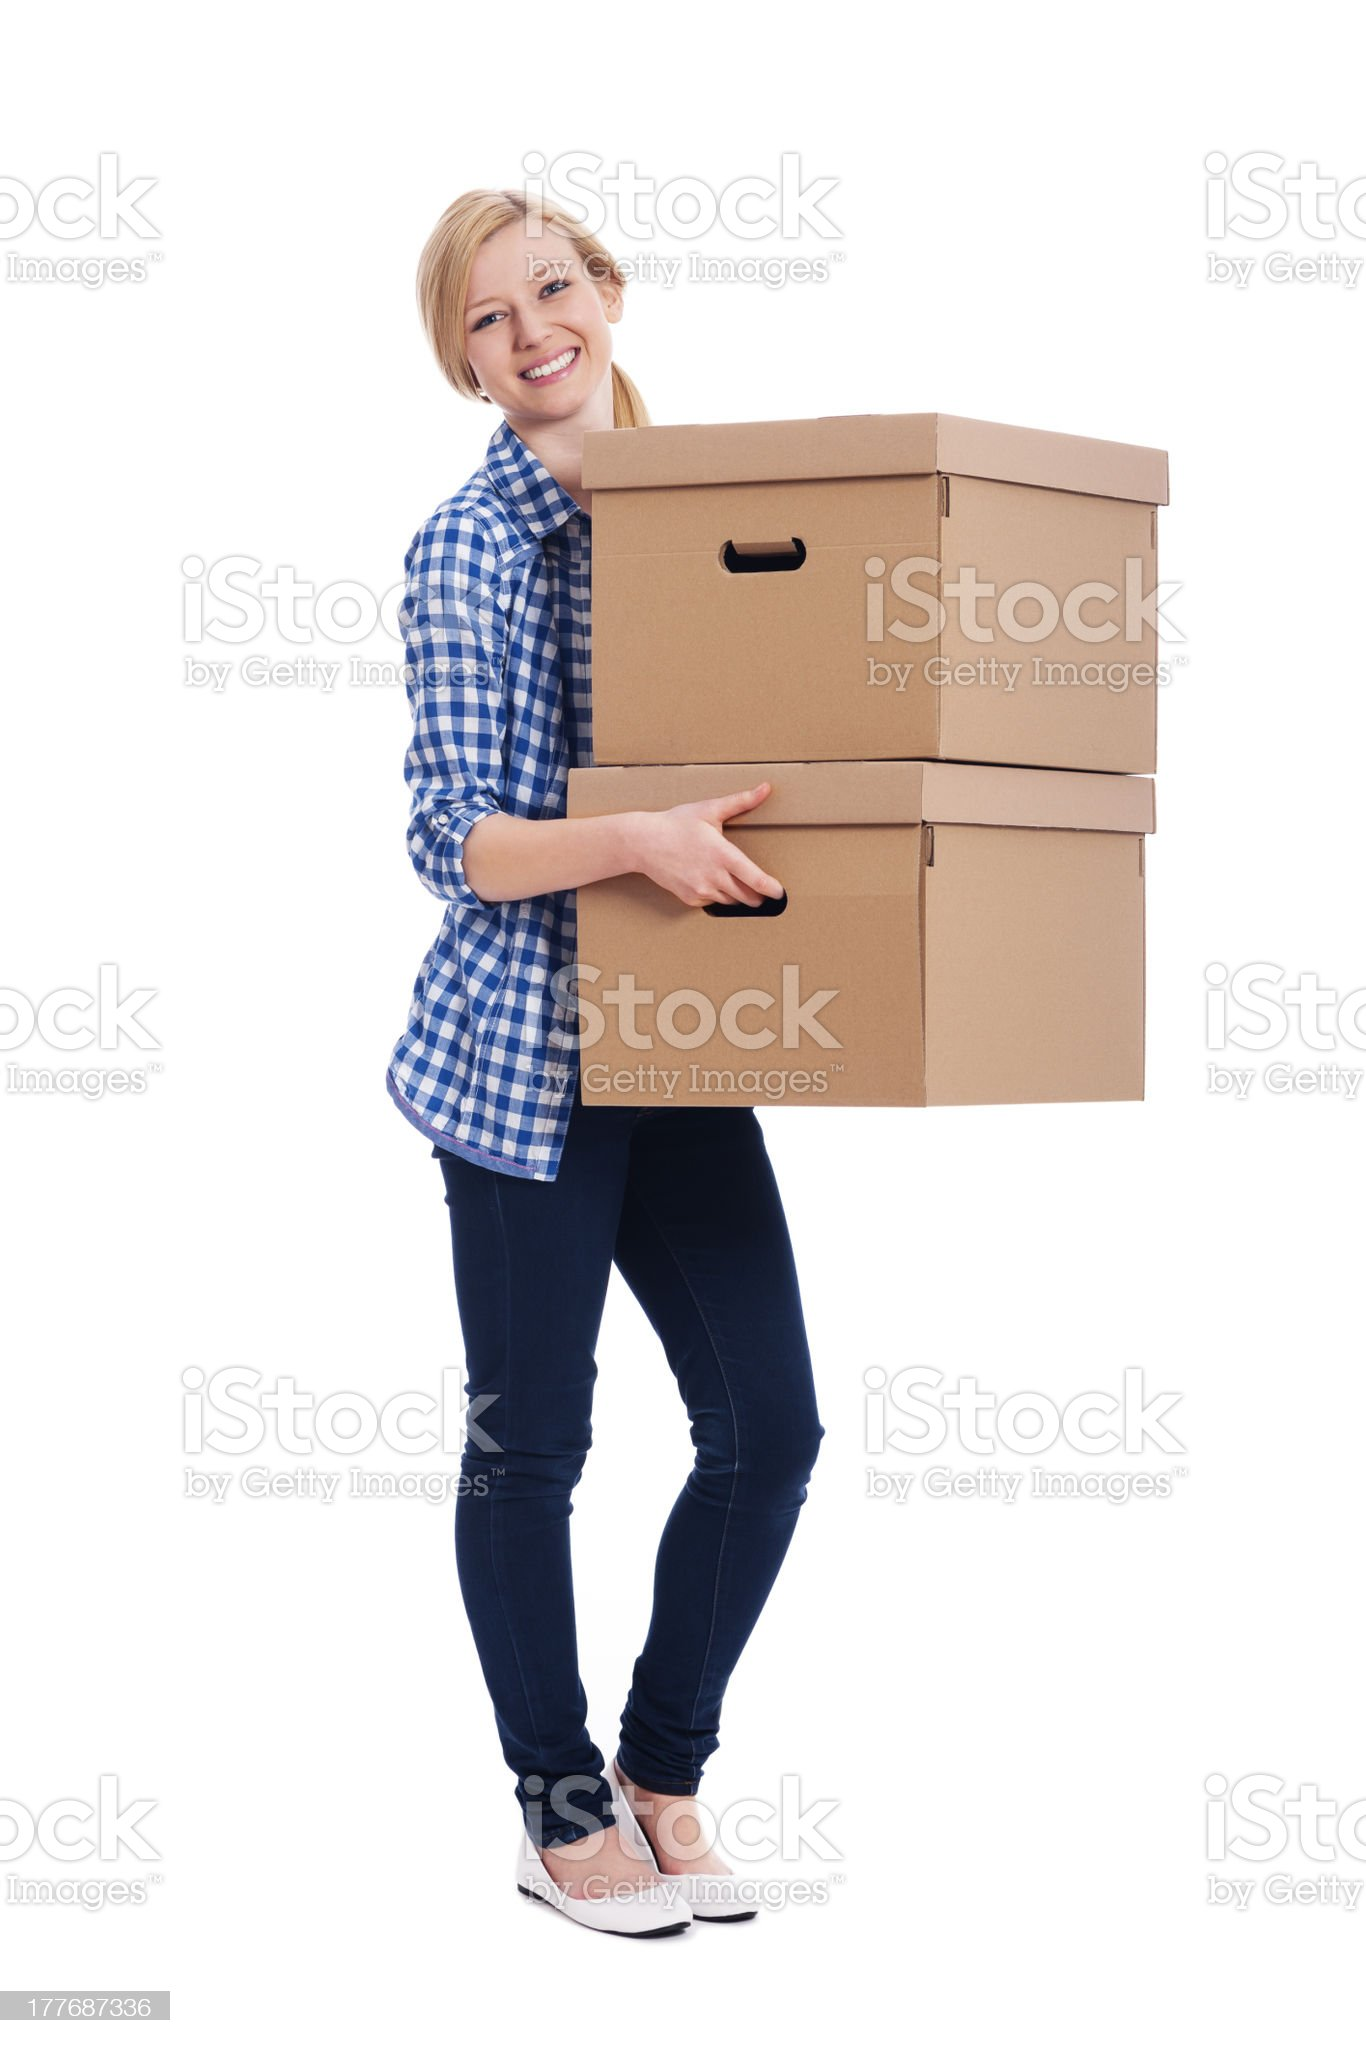 Smiling woman carrying two boxes royalty-free stock photo